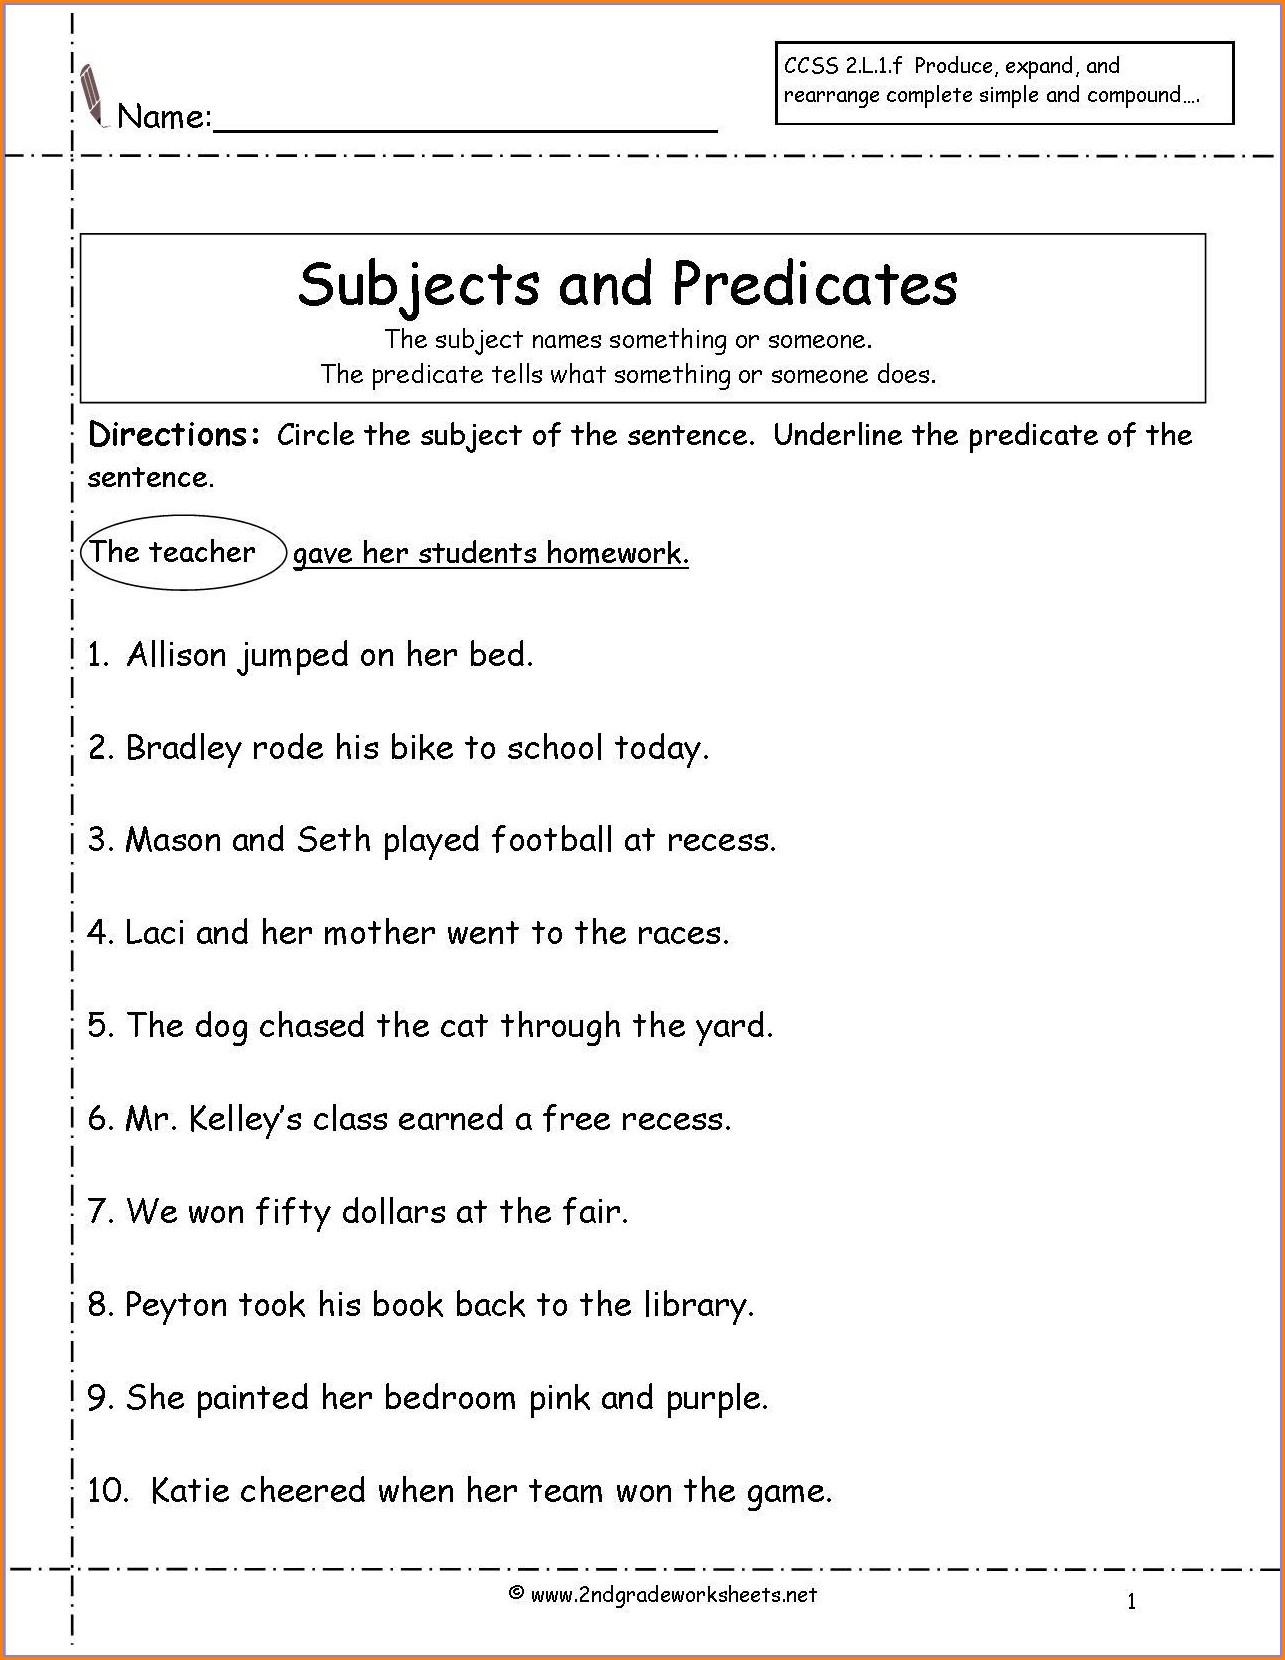 Worksheet On Subject Pronouns For Grade 2